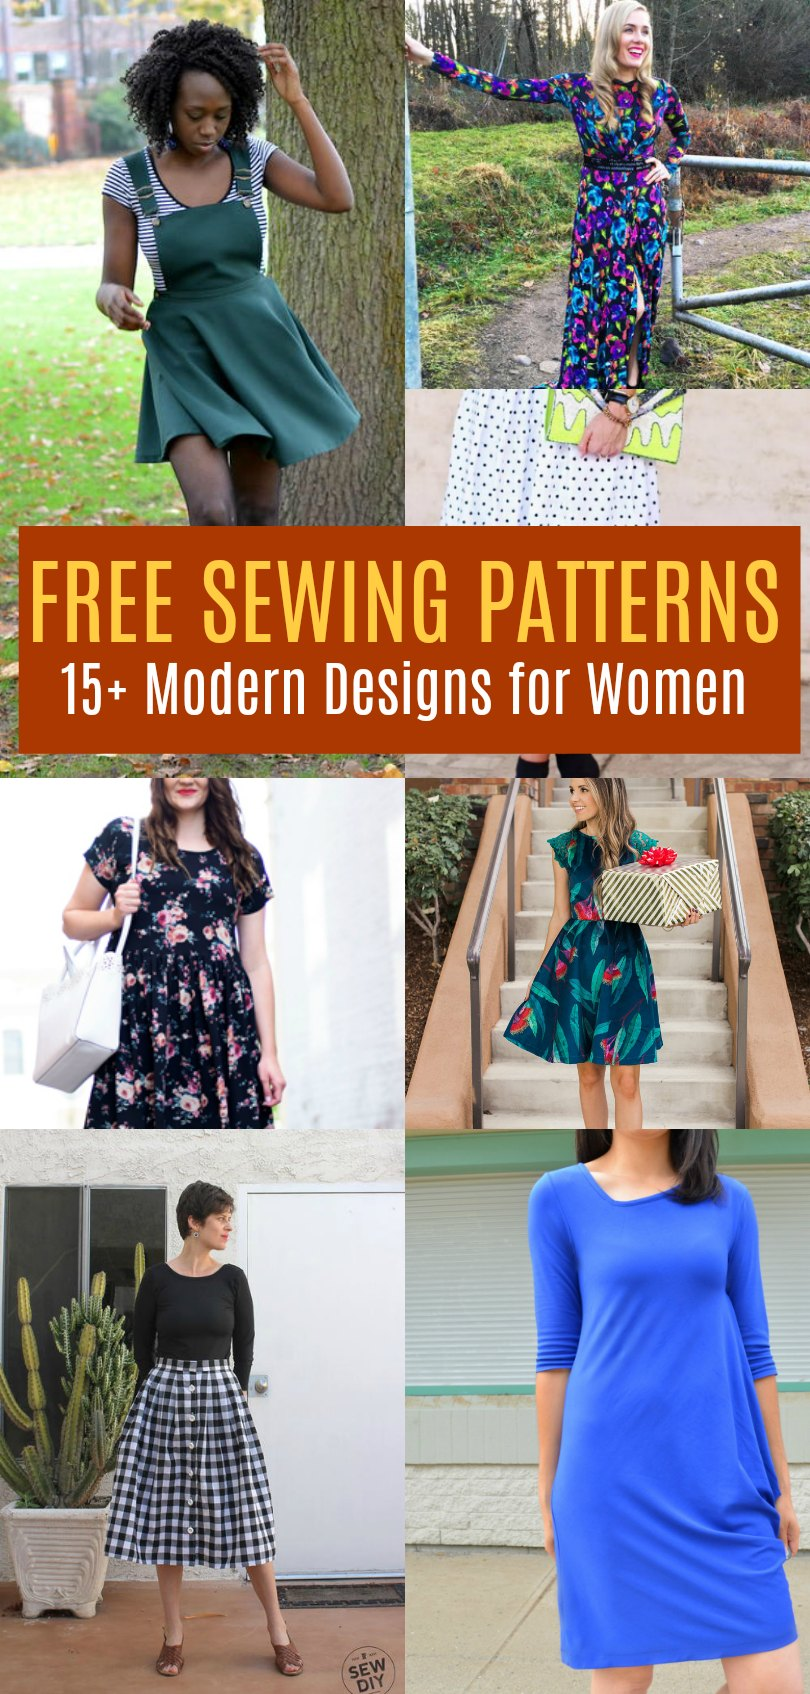 Free pattern alert 15 modern design sewing patterns for women free pattern alert 15 modern design sewing patterns for women on the cutting floor printable pdf sewing patterns and tutorials for women jeuxipadfo Images